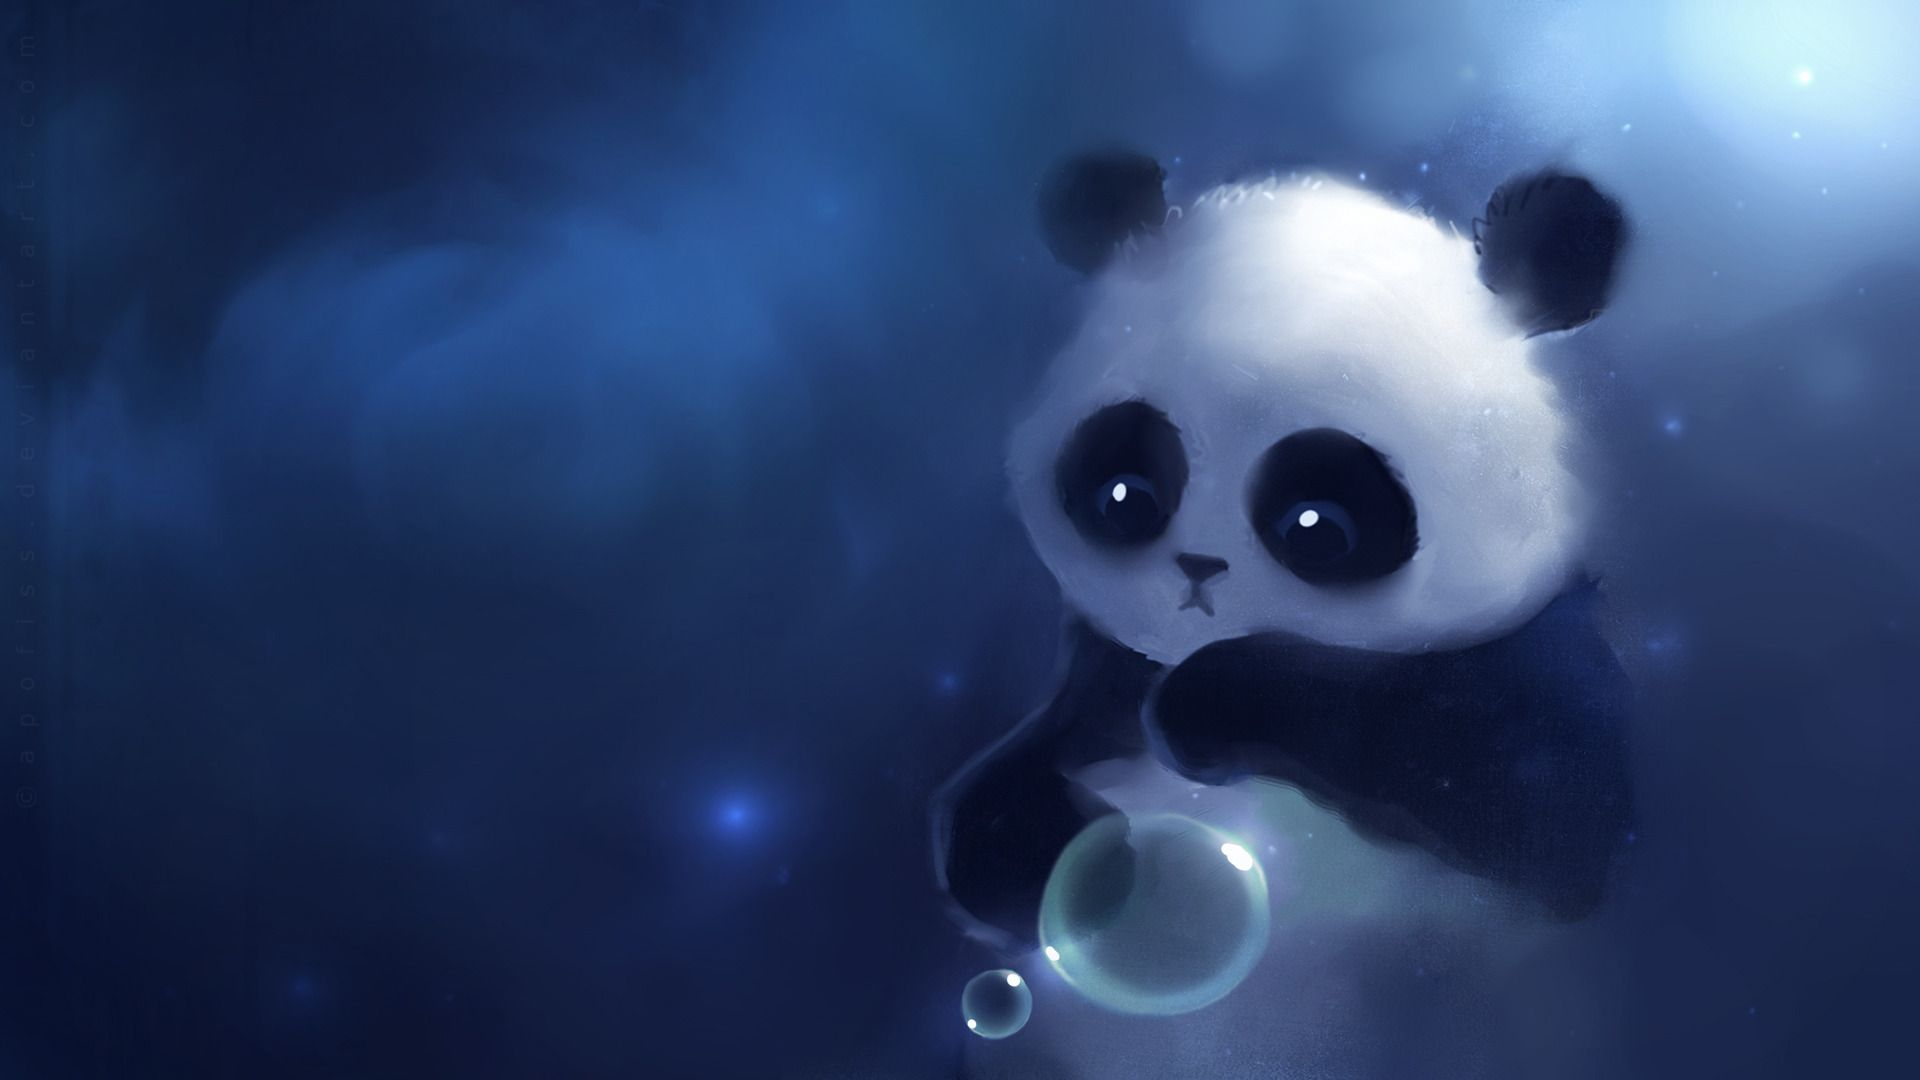 Cute Baby Panda Wallpaper High Quality Love Iphone Pink For 1920x1080